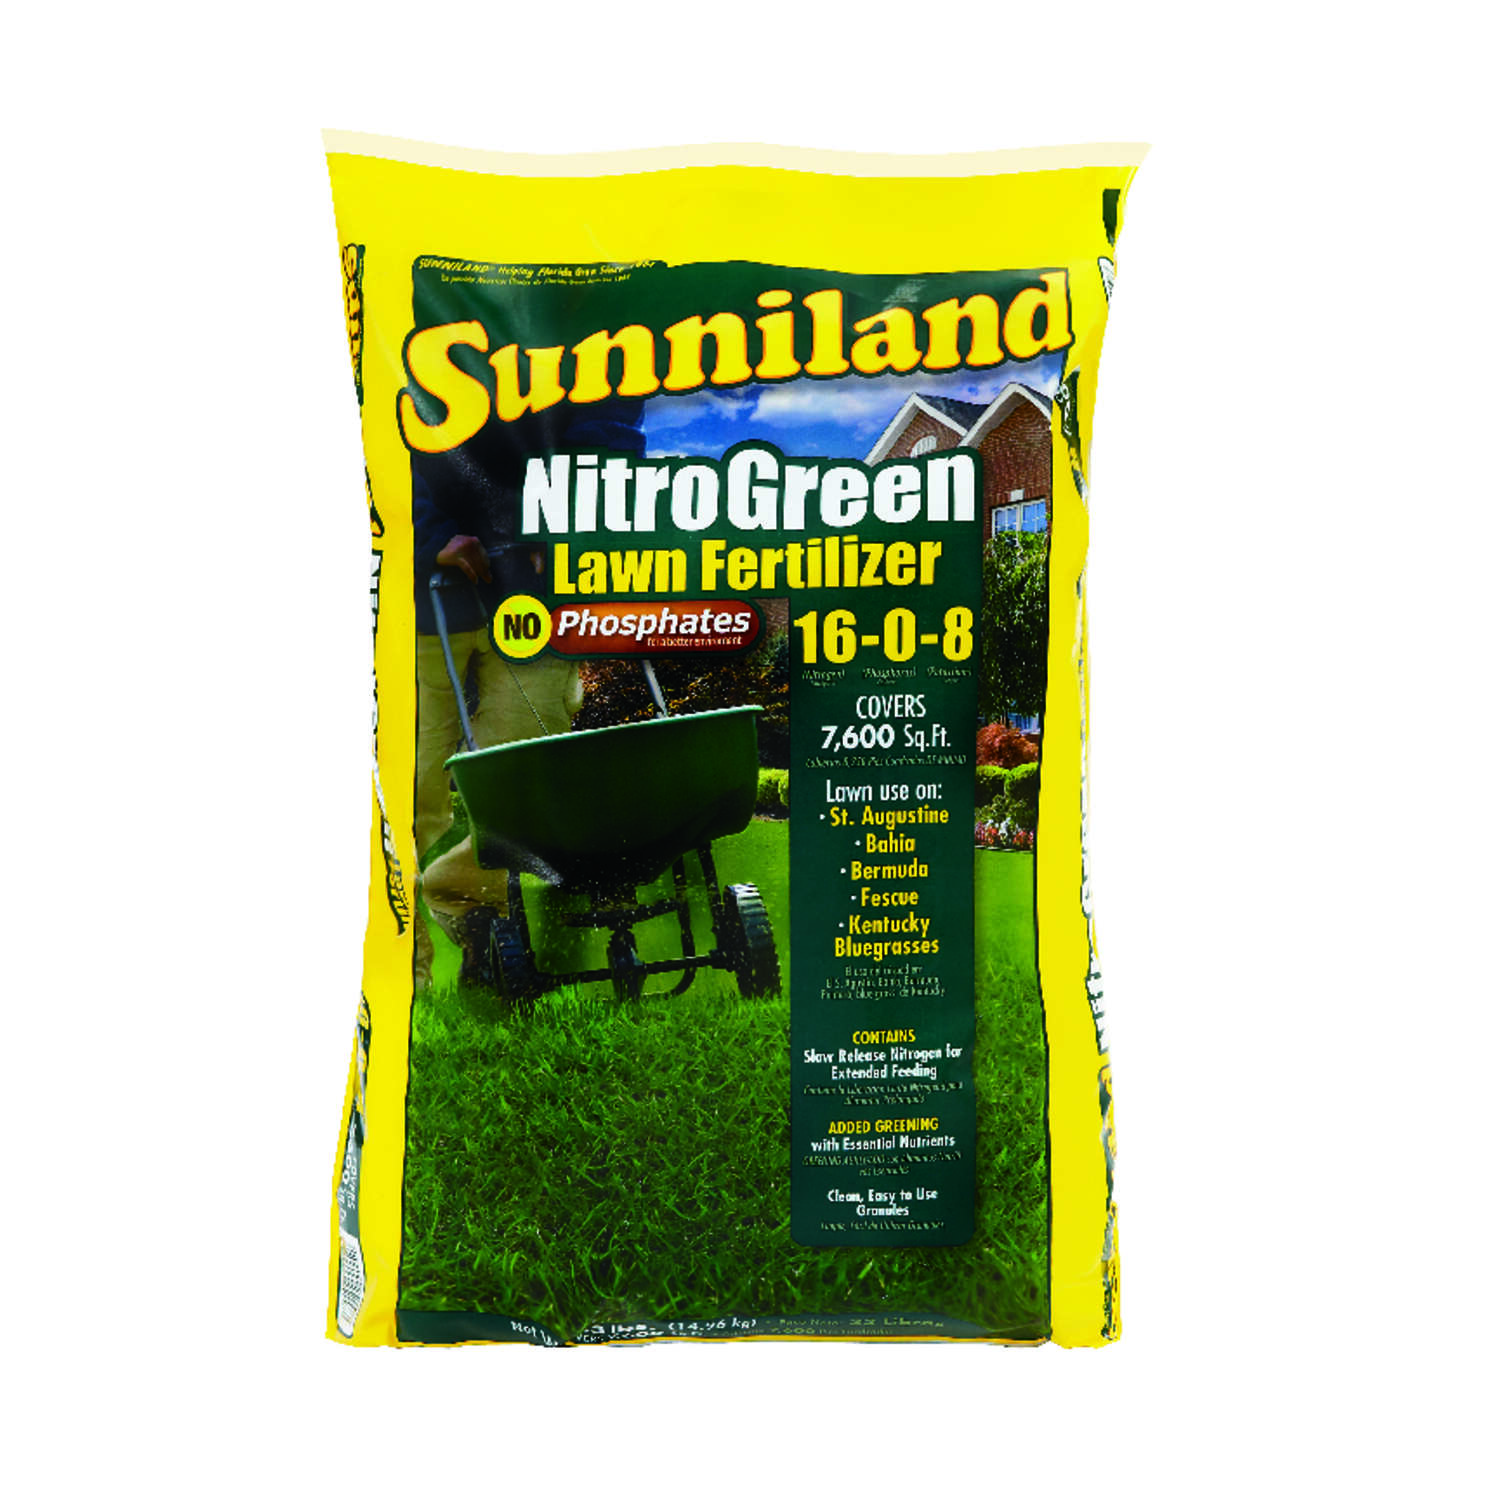 Sunniland  Nitro Green  16-0-8  Lawn Fertilizer  For All Grass Types 33 lb. 7600 sq. ft.